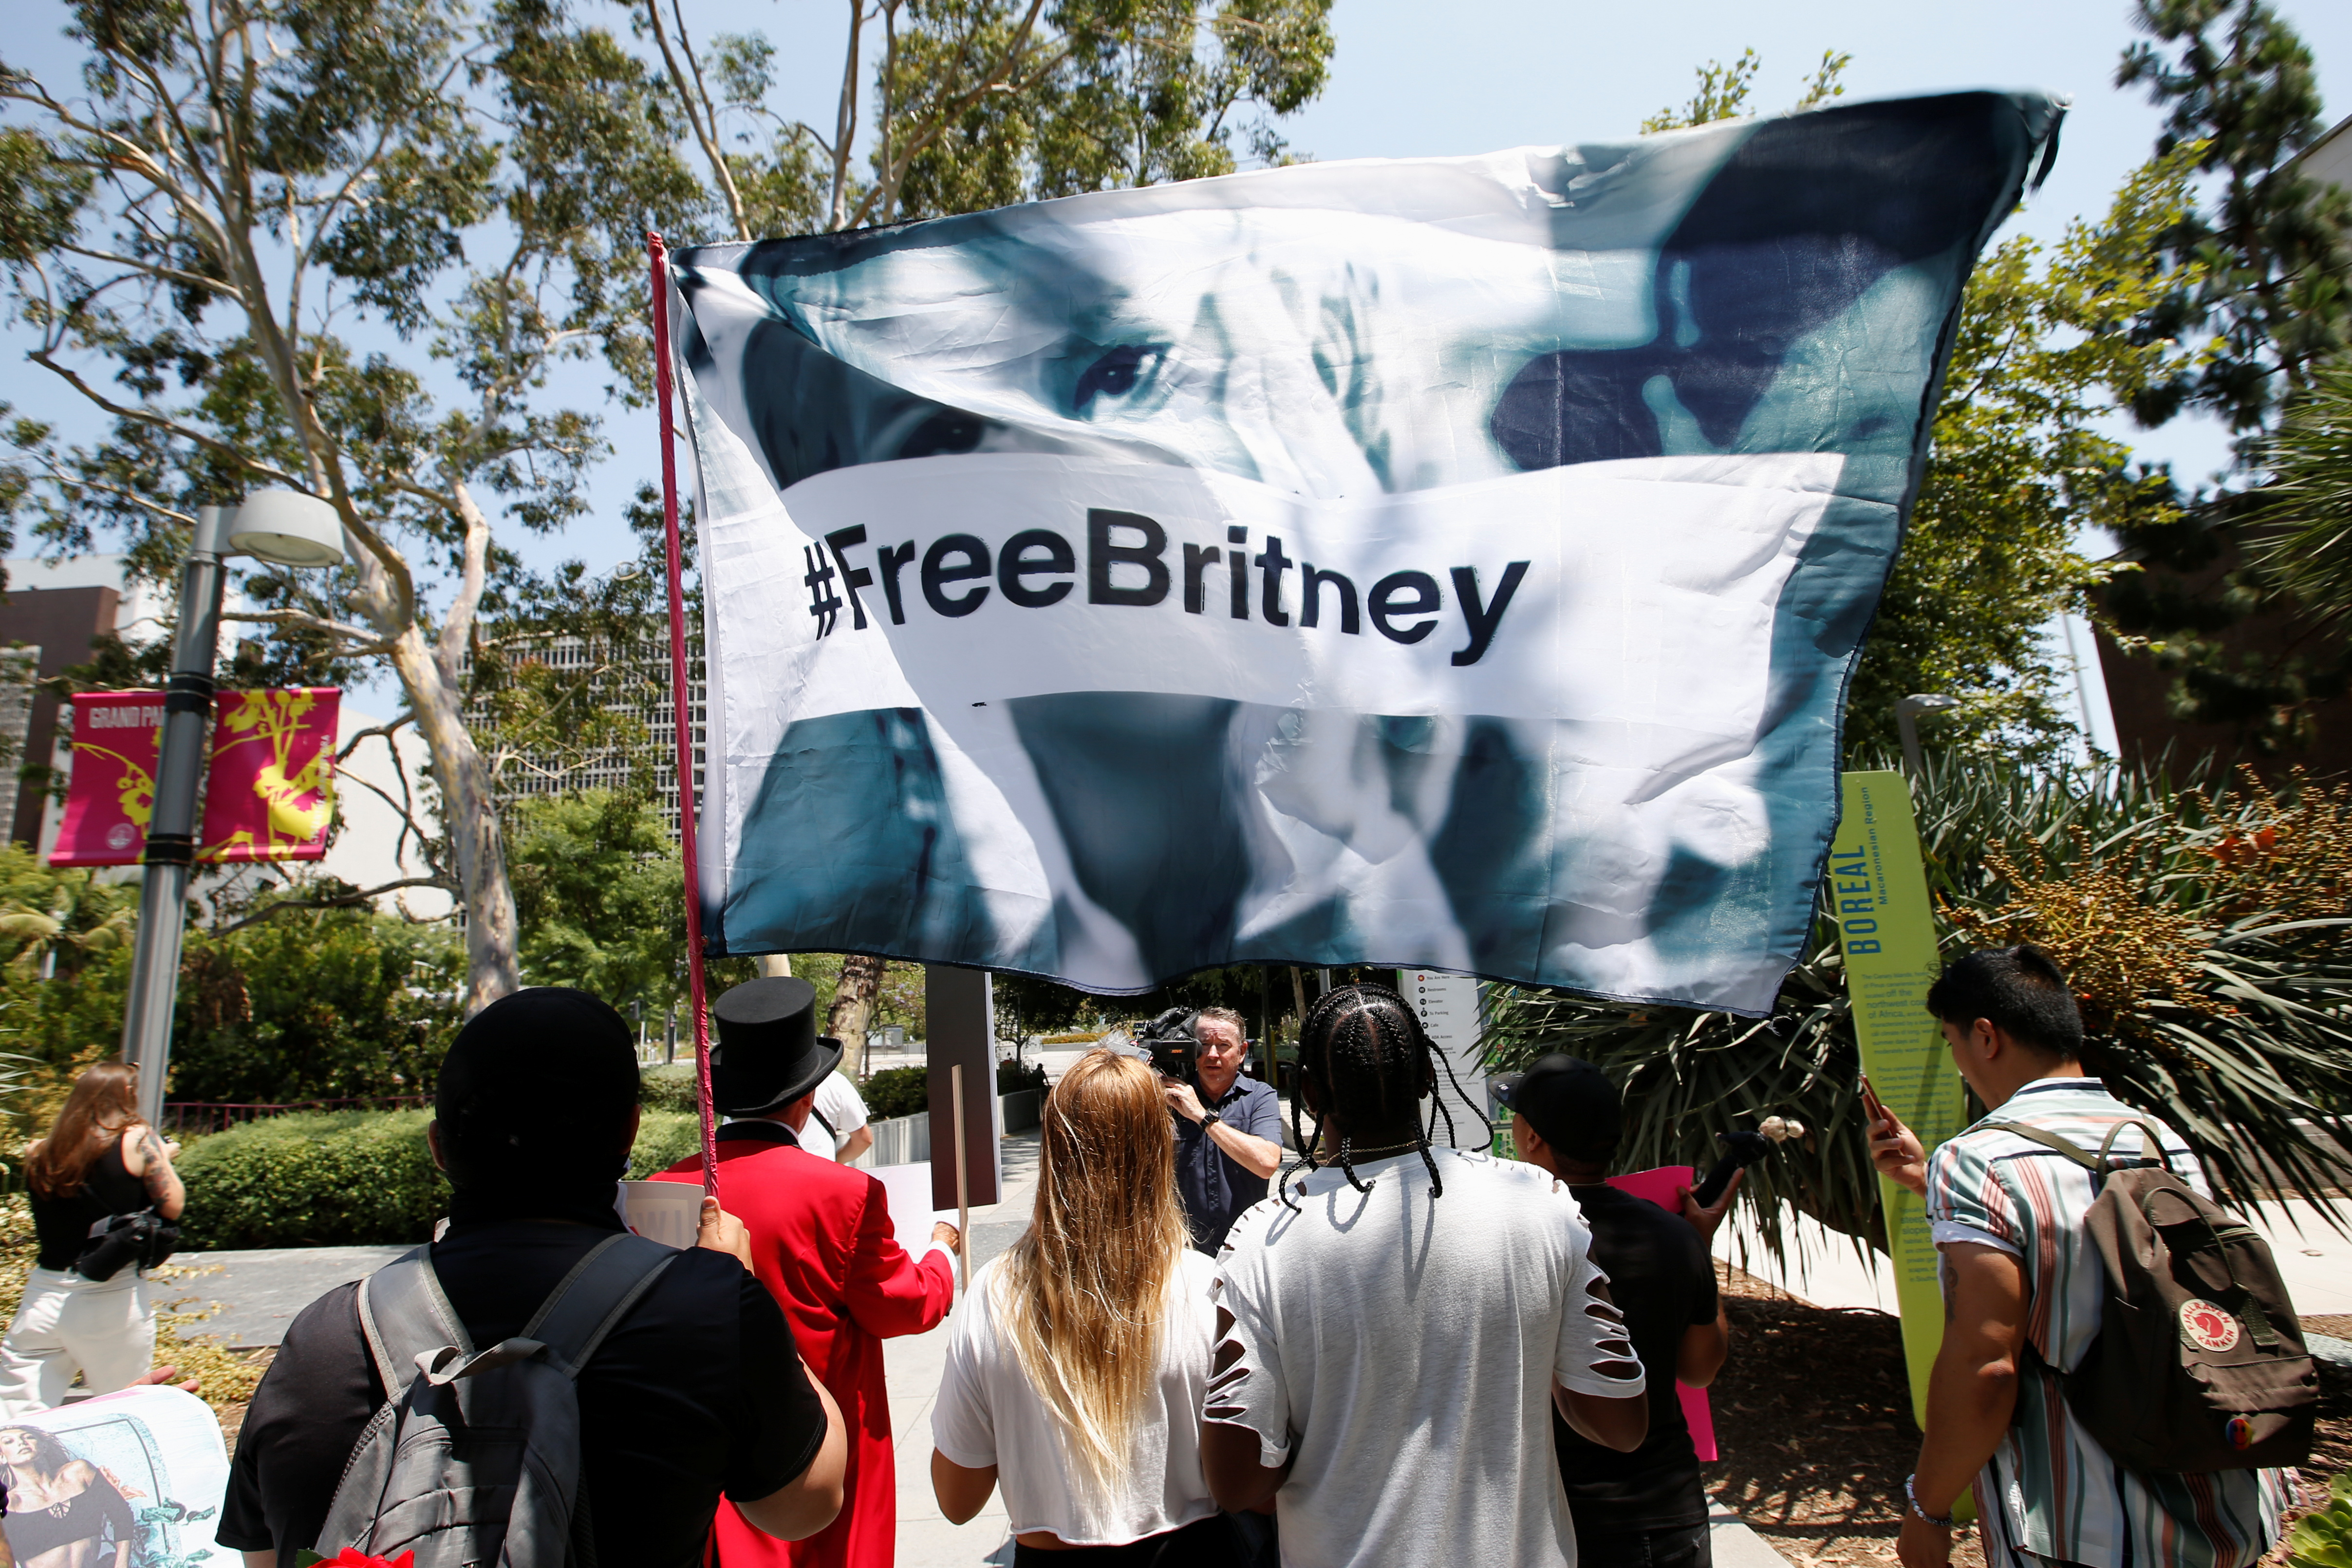 People protest in support of pop star Britney Spears on the day of a conservatorship case hearing at Stanley Mosk Courthouse in Los Angeles, California, U.S., July 14, 2021.  REUTERS/Mario Anzuoni